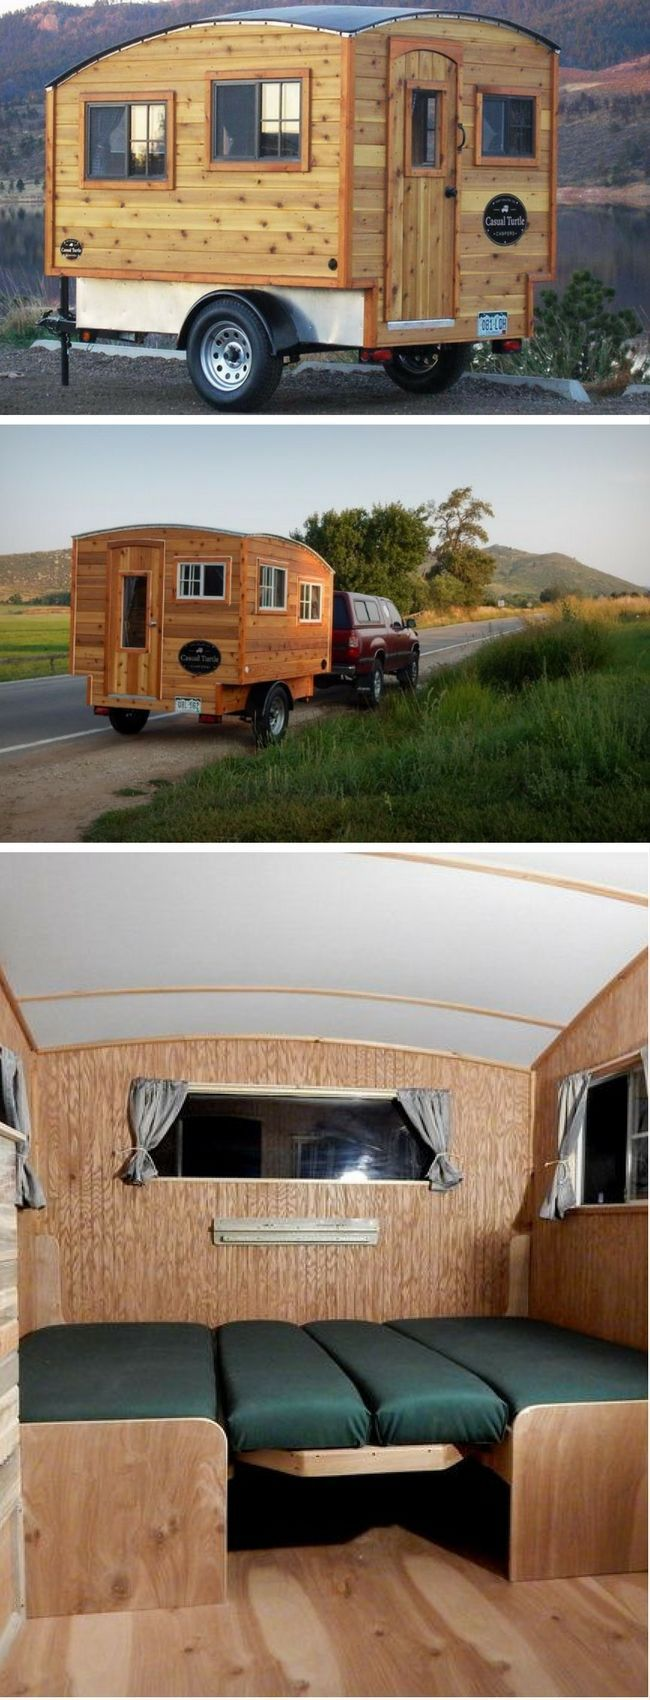 Experience the rustic lifestyle inside a charming trailer – its adaptable interior will win you over https://www.uksportsoutdoors.com/product/3m-x-3m-waterproof-lightweightripstop-compact-strong-green-tarpaulin-for-camping/ #CampingTents